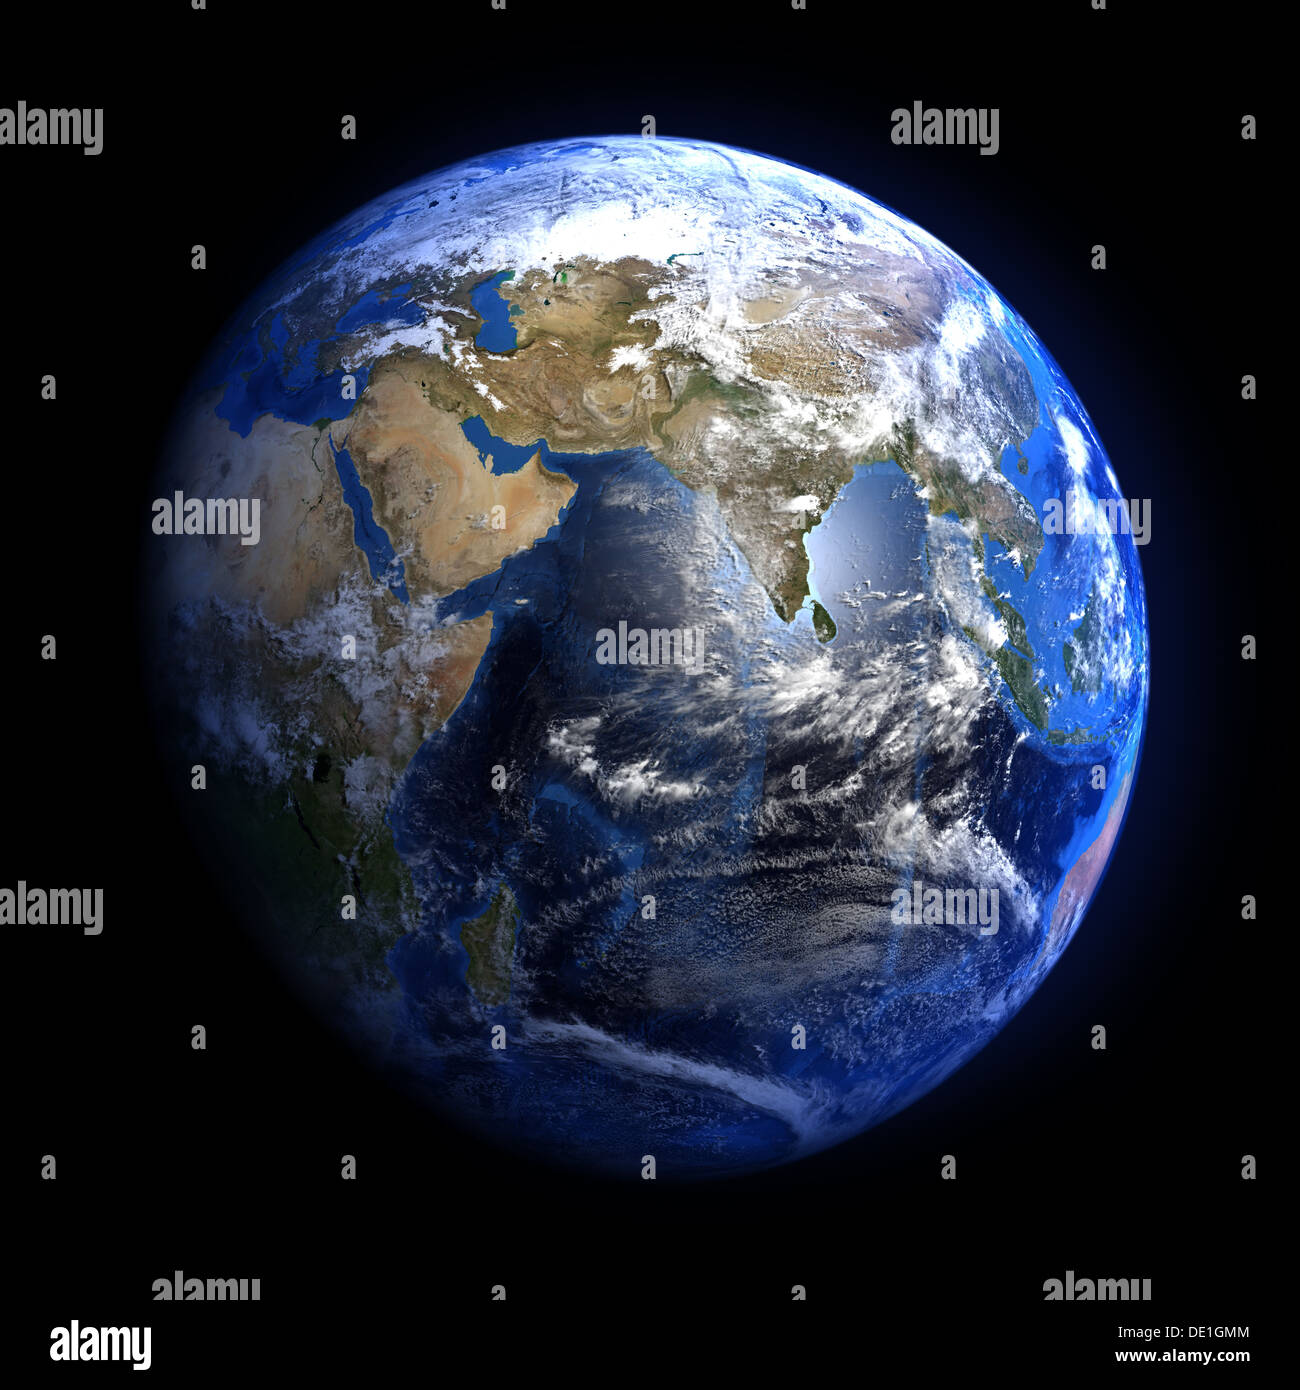 The Earth from space showing India and the Middle East. Isolated on black. Other orientations available. - Stock Image